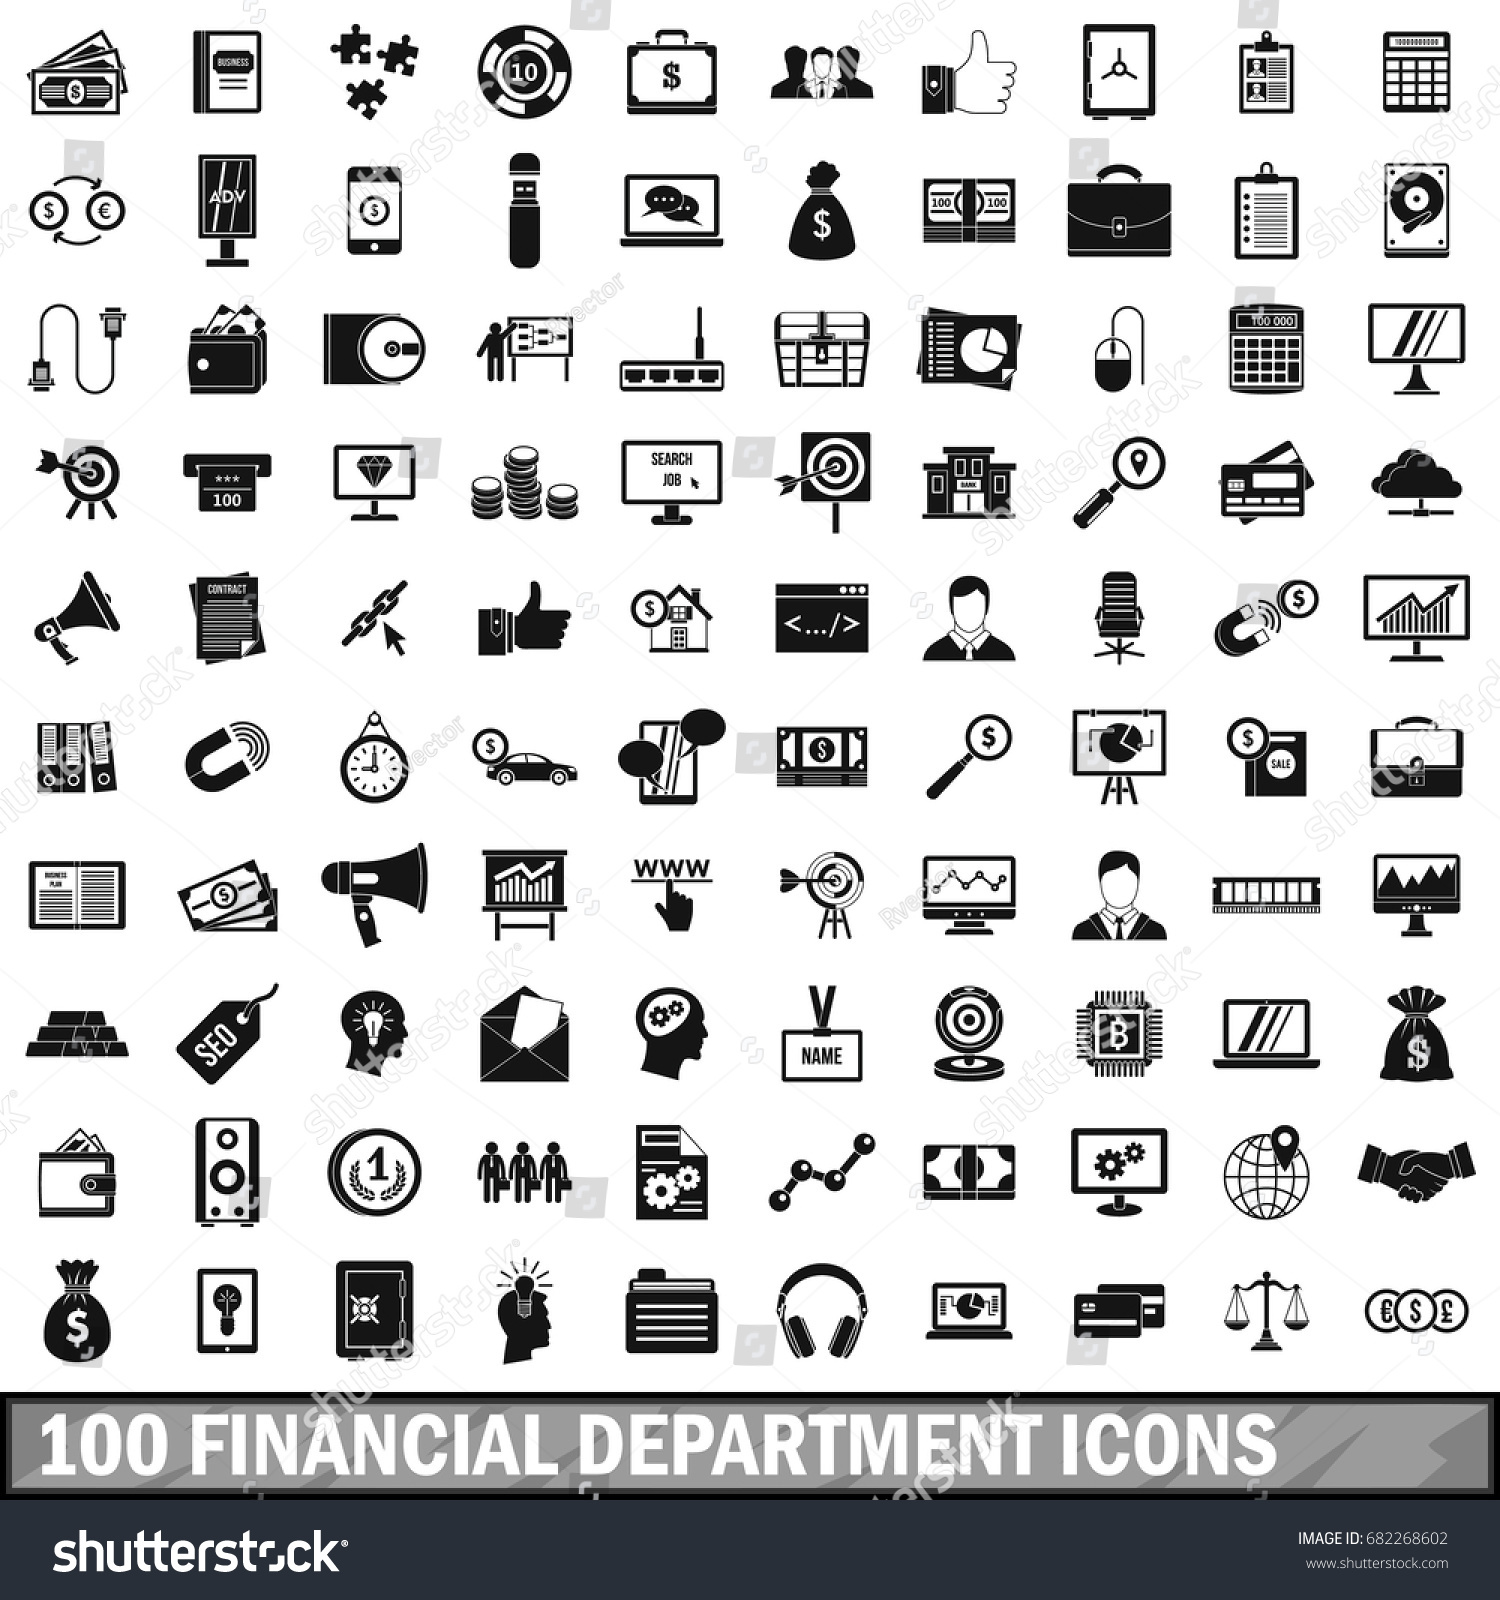 Finance Department: 100 Financial Department Icons Set Simple Stock Vector